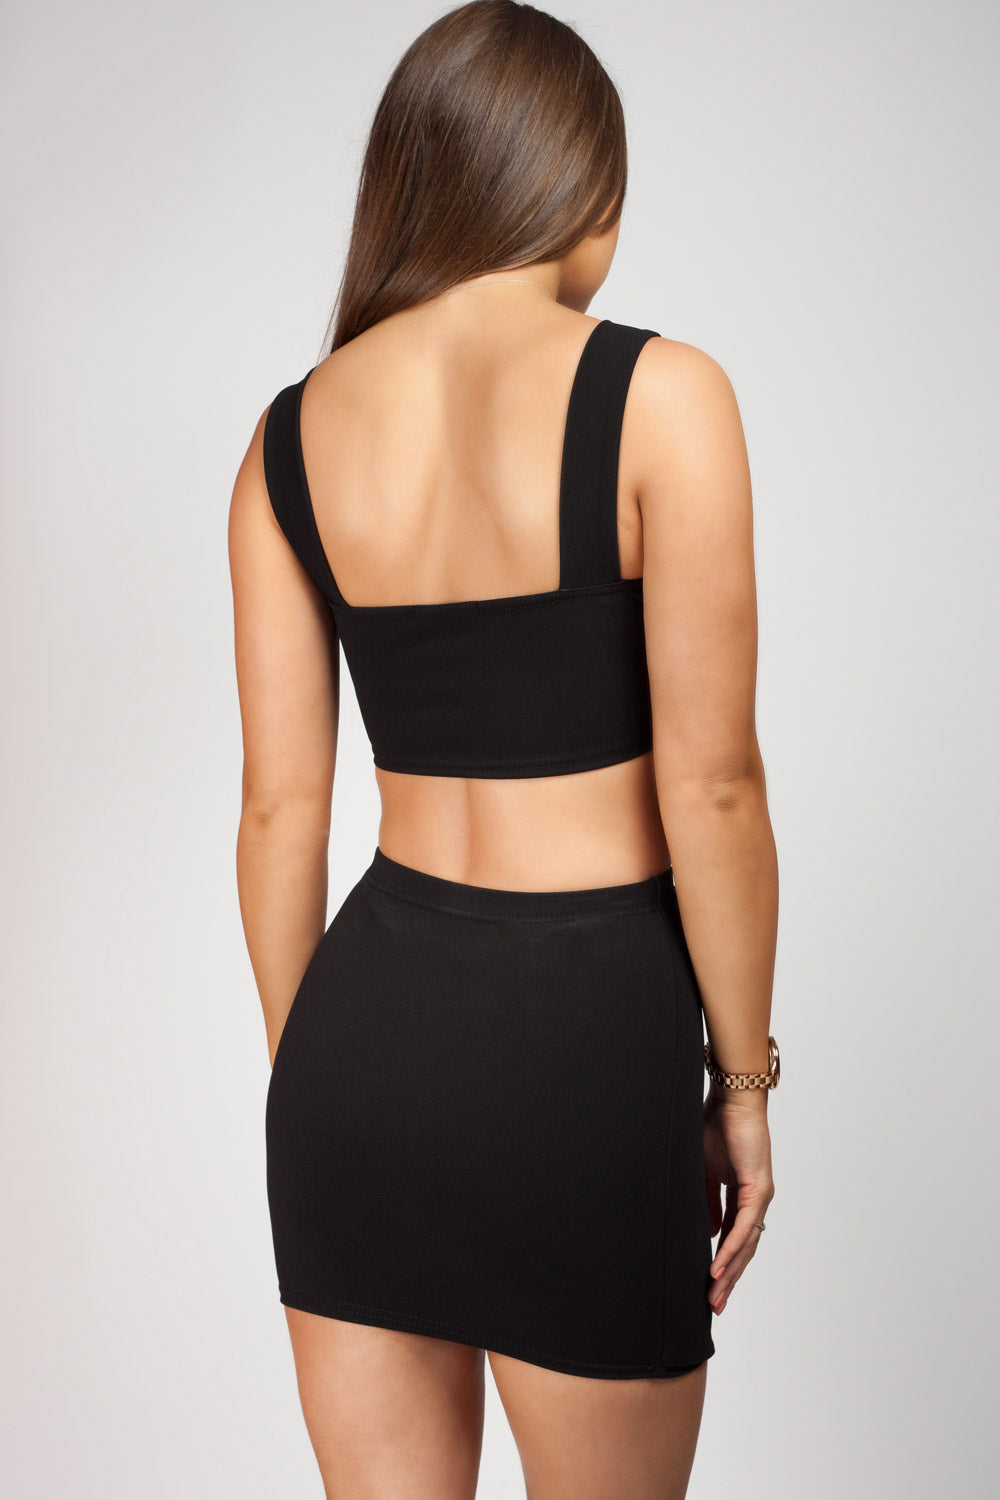 black two piece skirt and top